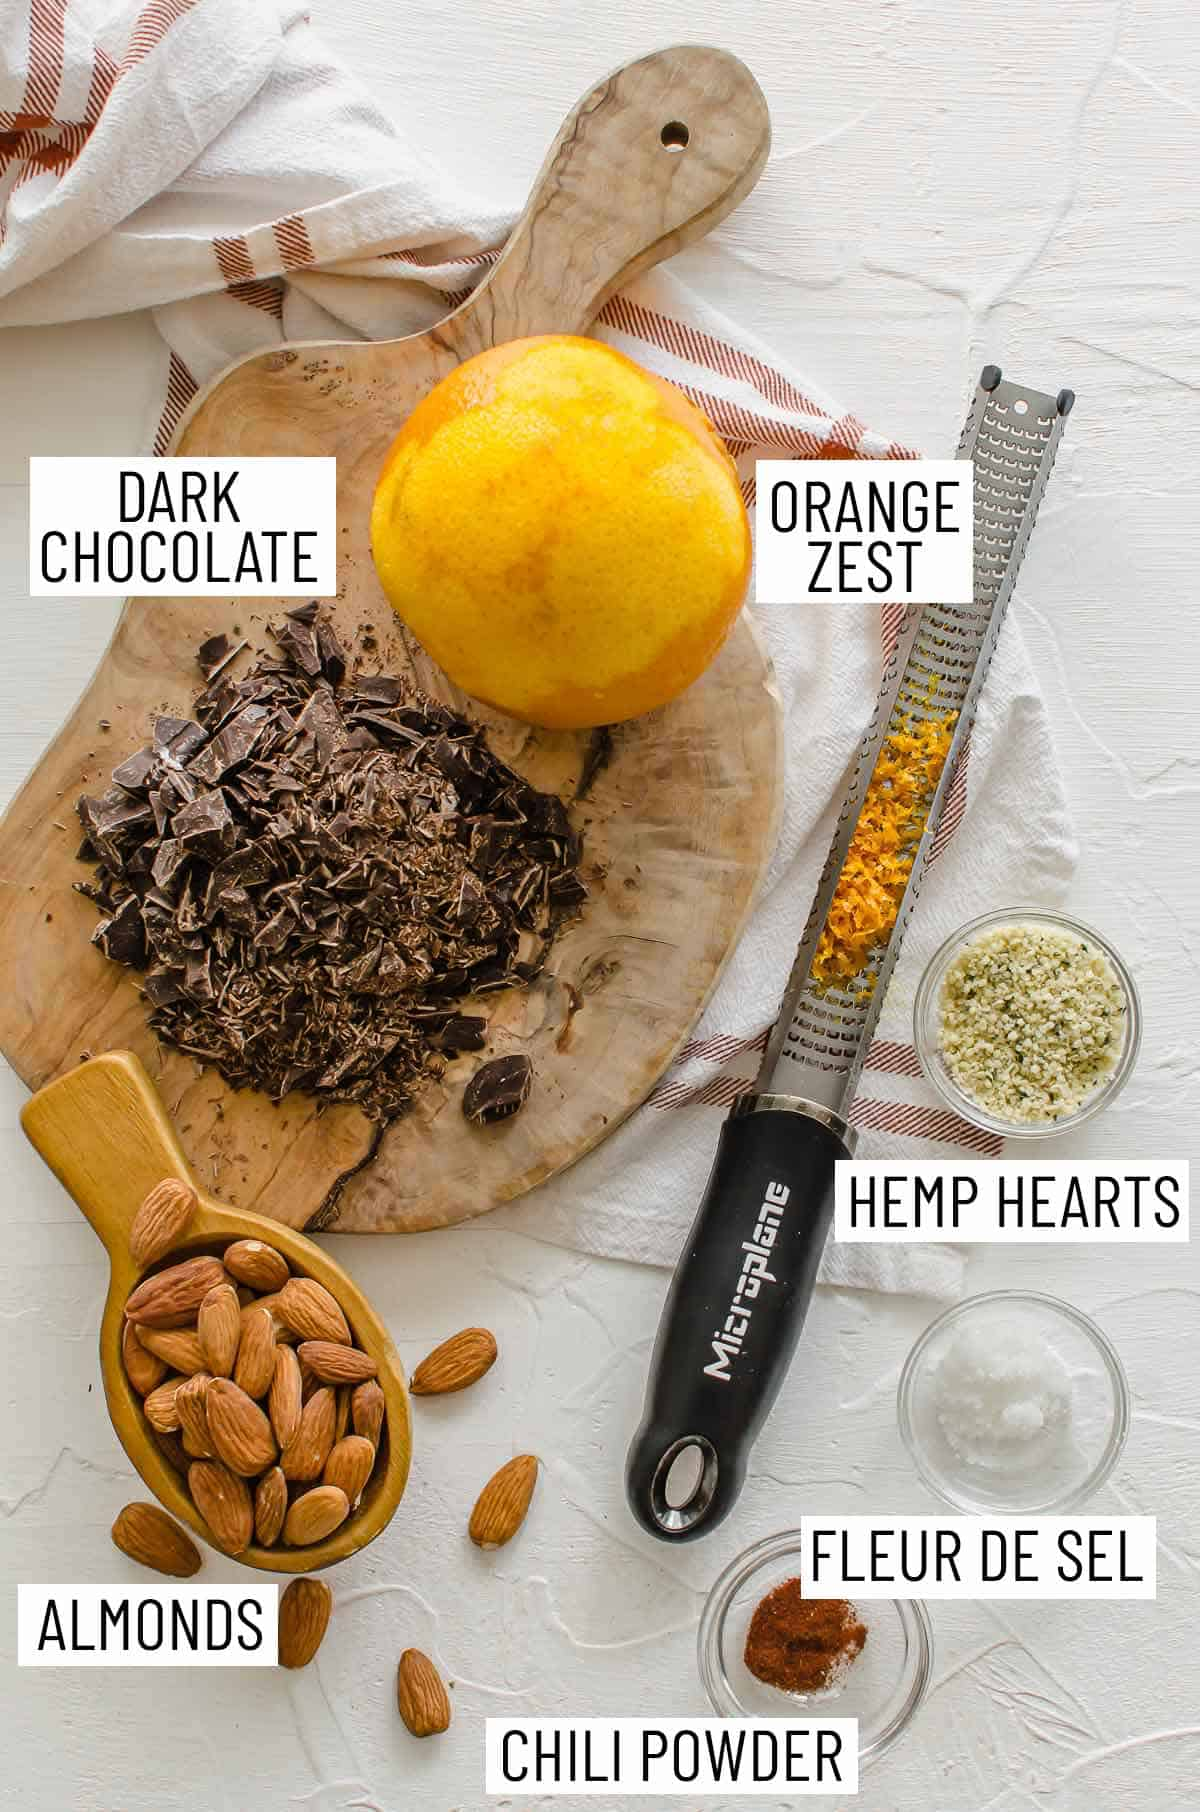 Overhead photo of ingredients needed to make recipe: dark chocolate, orange zest, hemp hearts, fleur de sel, chili powder, and almonds.